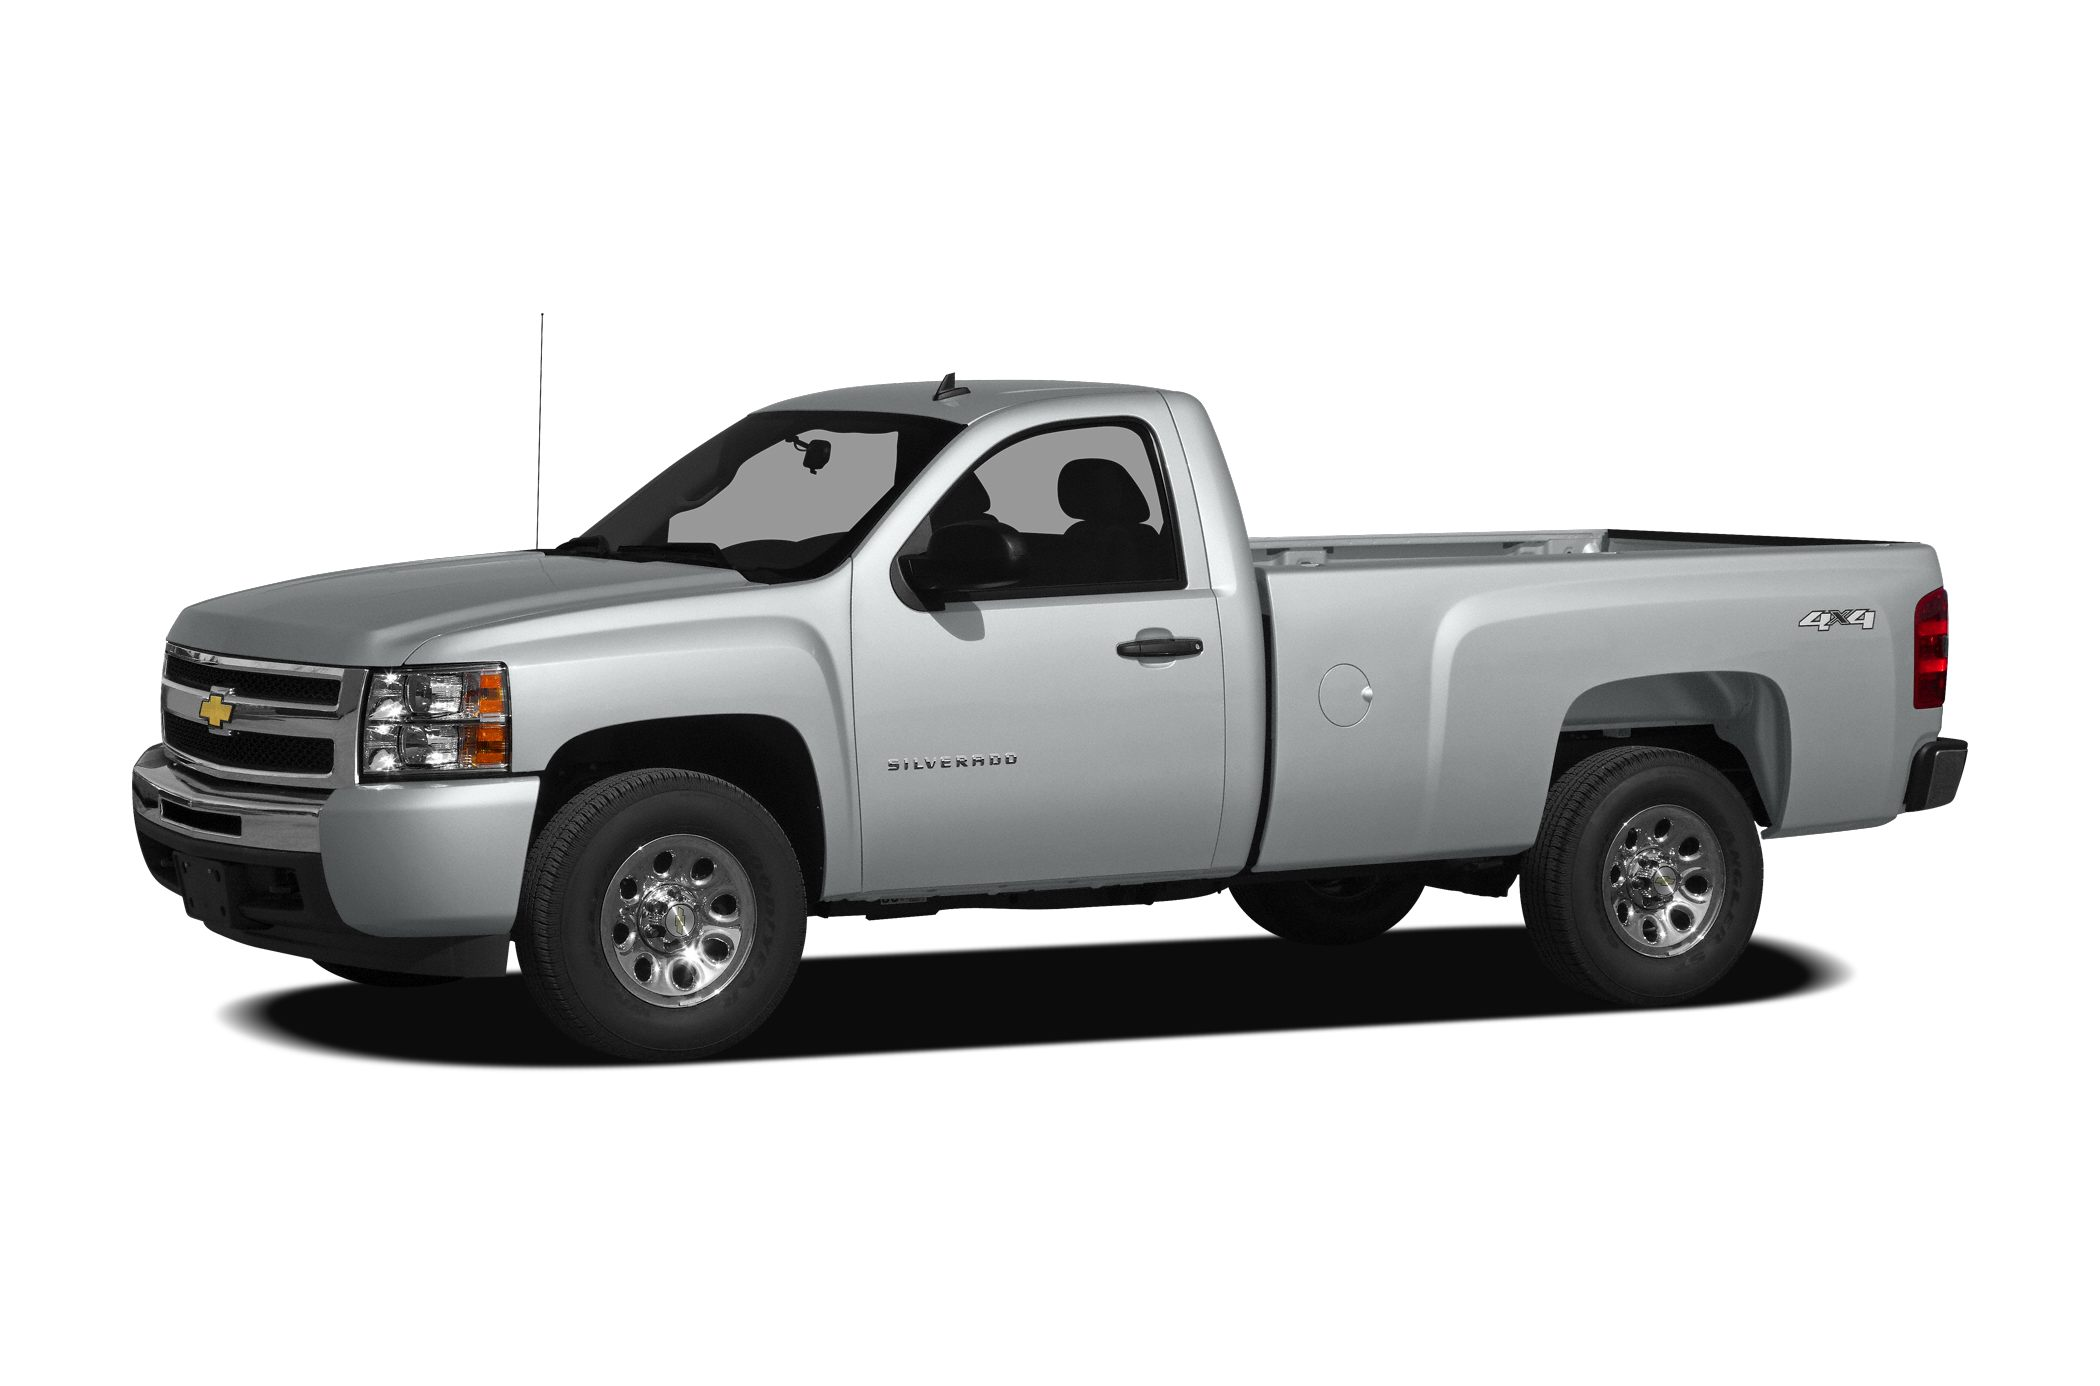 2010 Chevrolet Silverado 1500 Work Truck Regular Cab Pickup for sale in Waynesboro for $14,995 with 118,659 miles